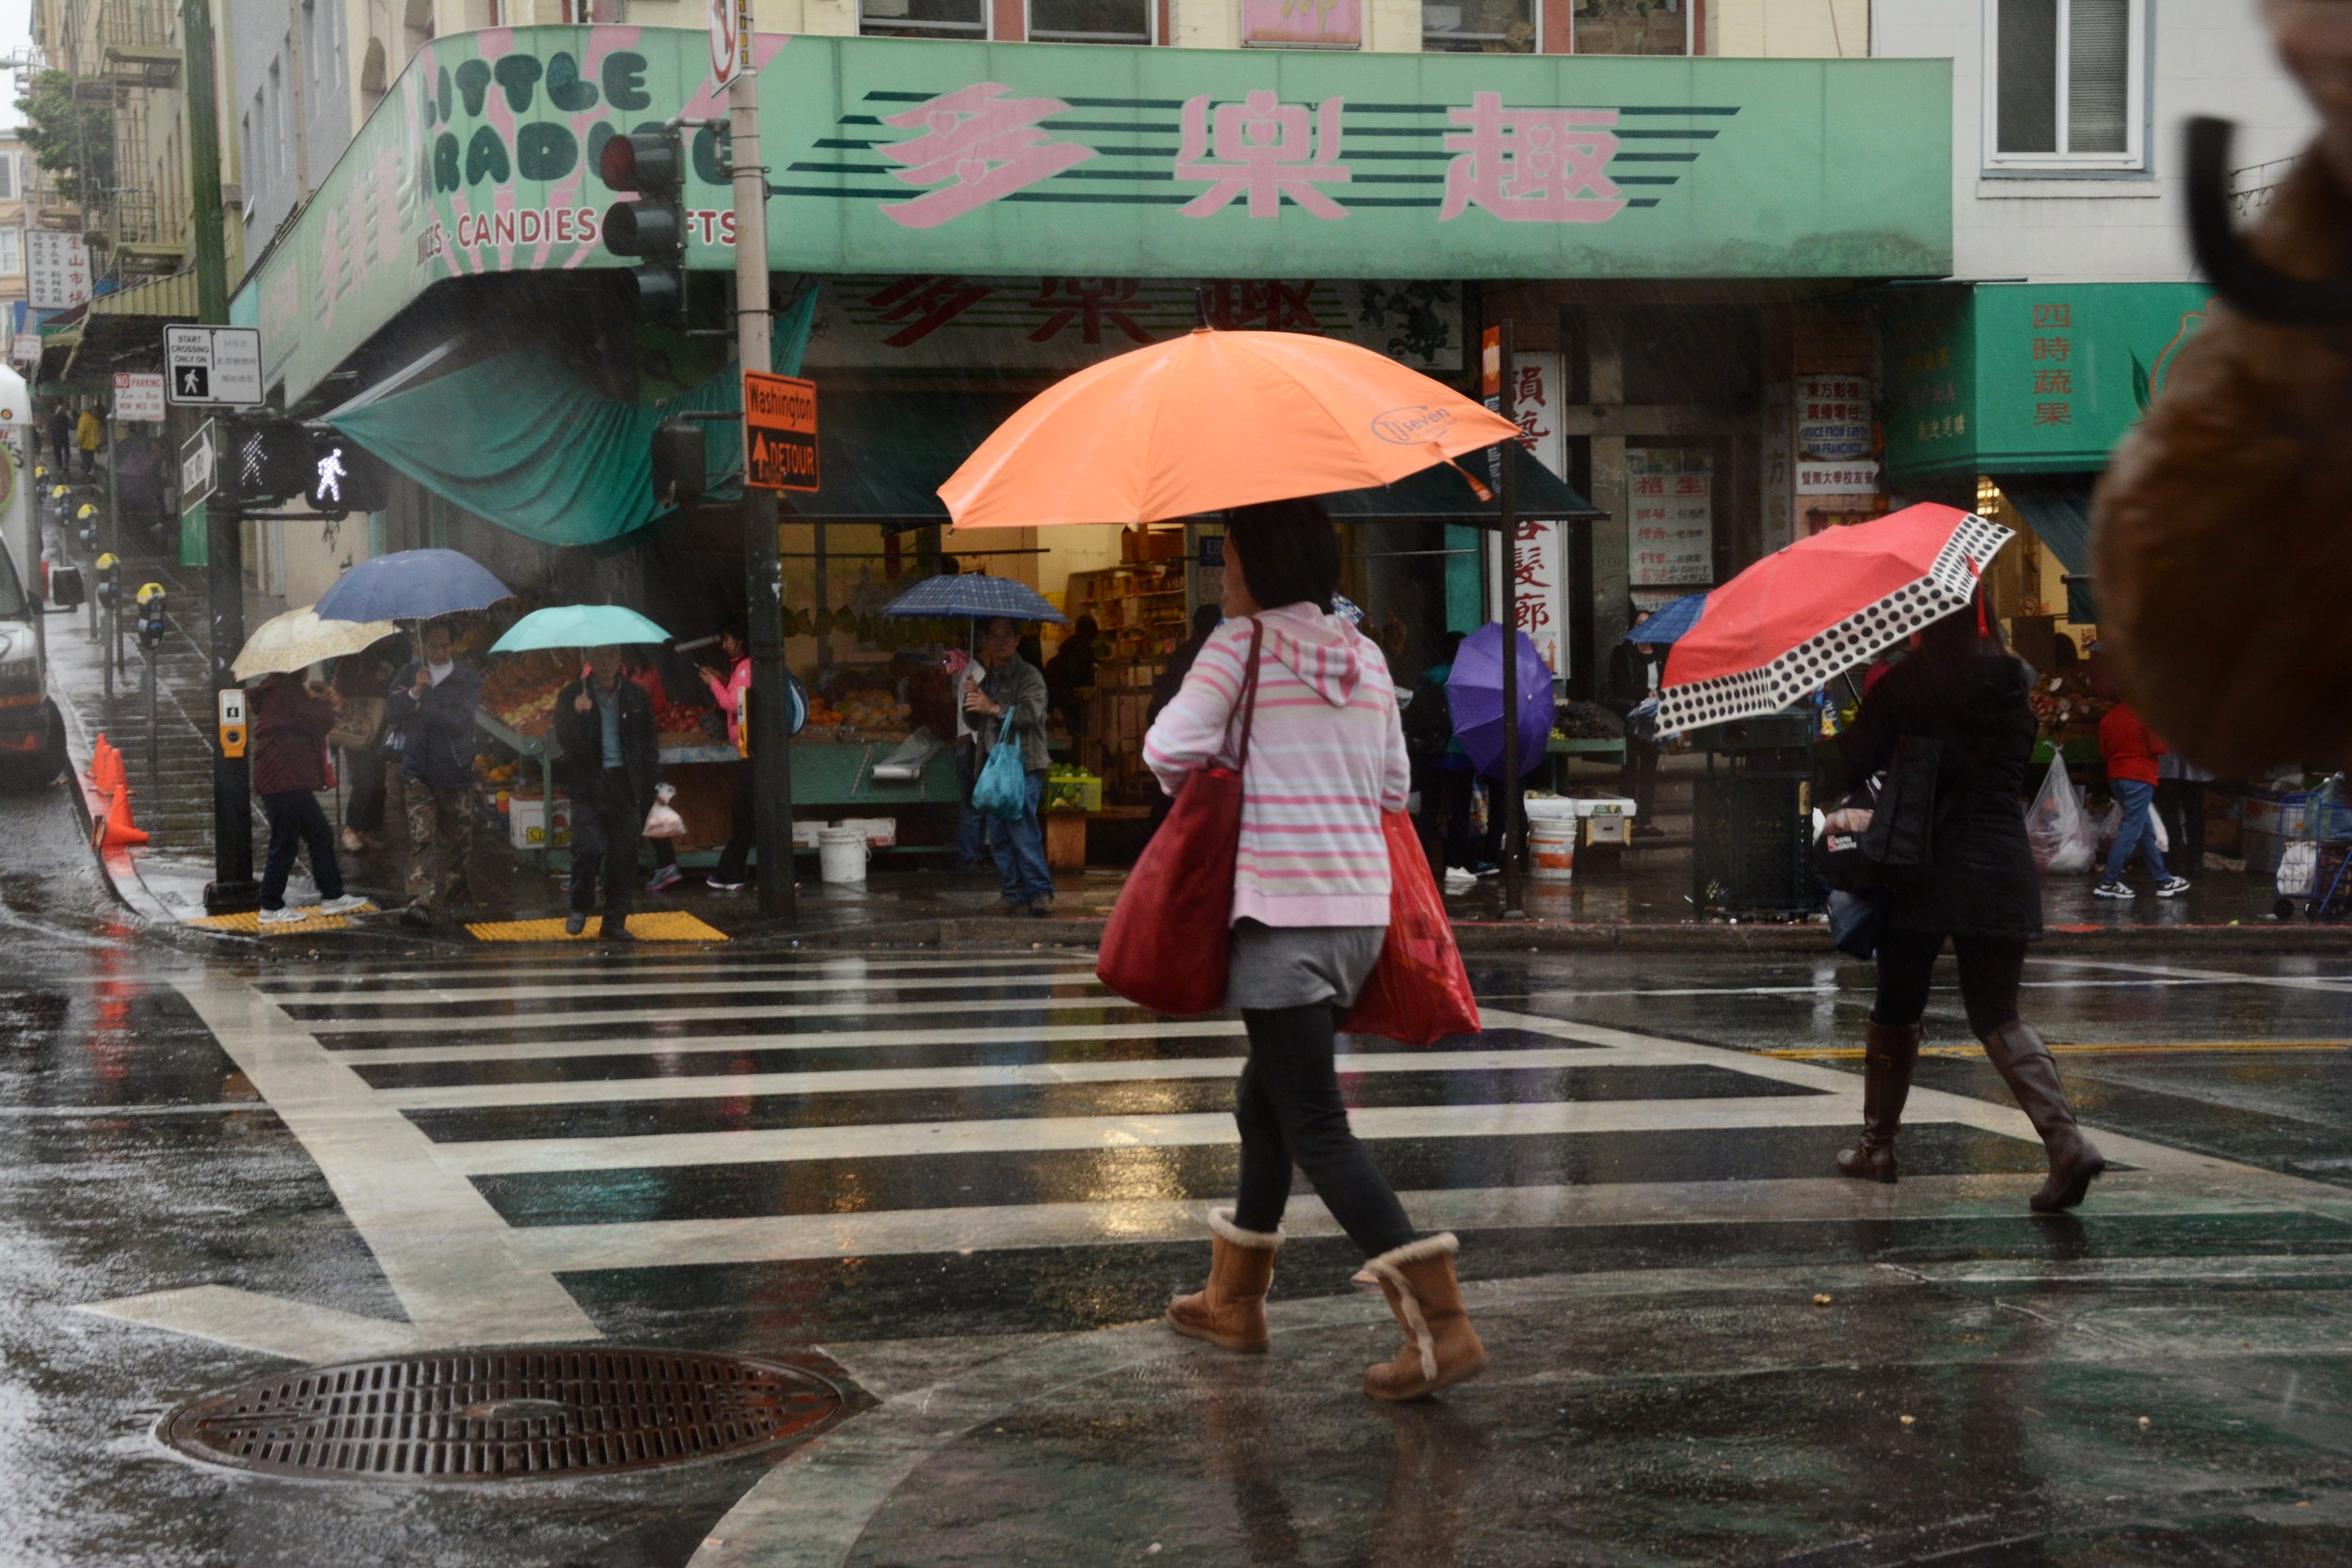 Yet another rainy day in Chinatown, San Francisco